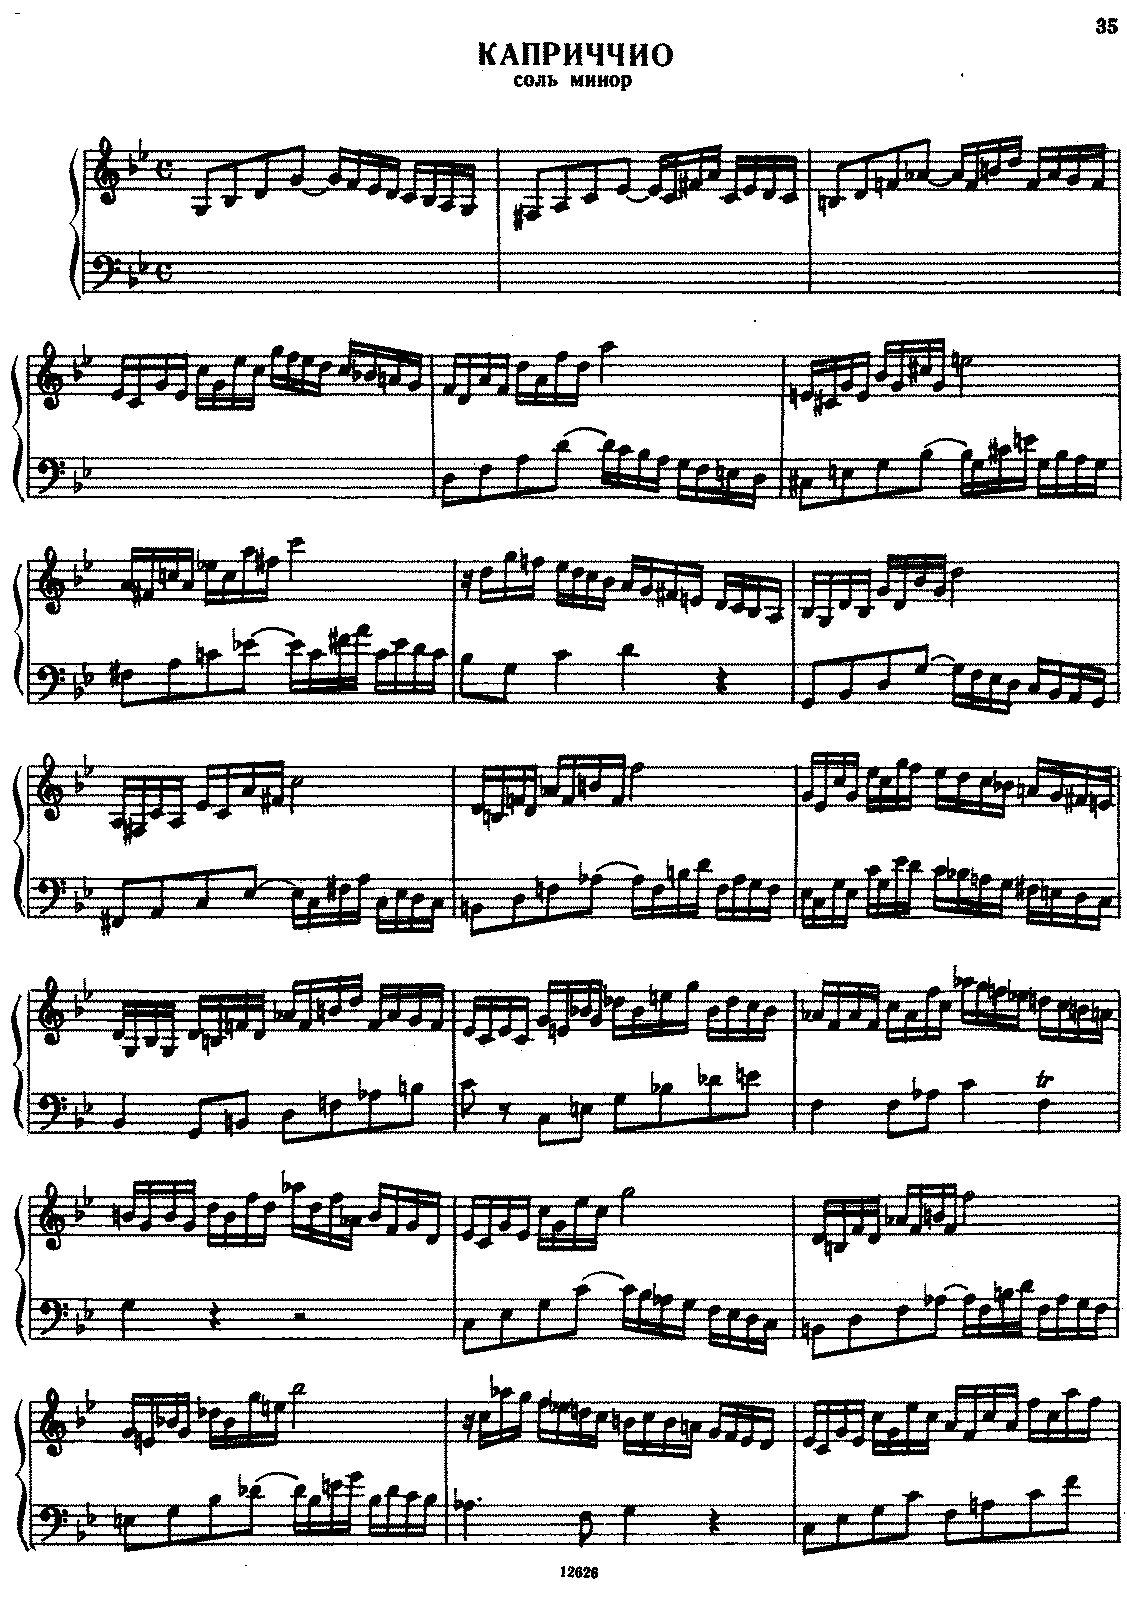 Handel - Capriccio in G minor.pdf